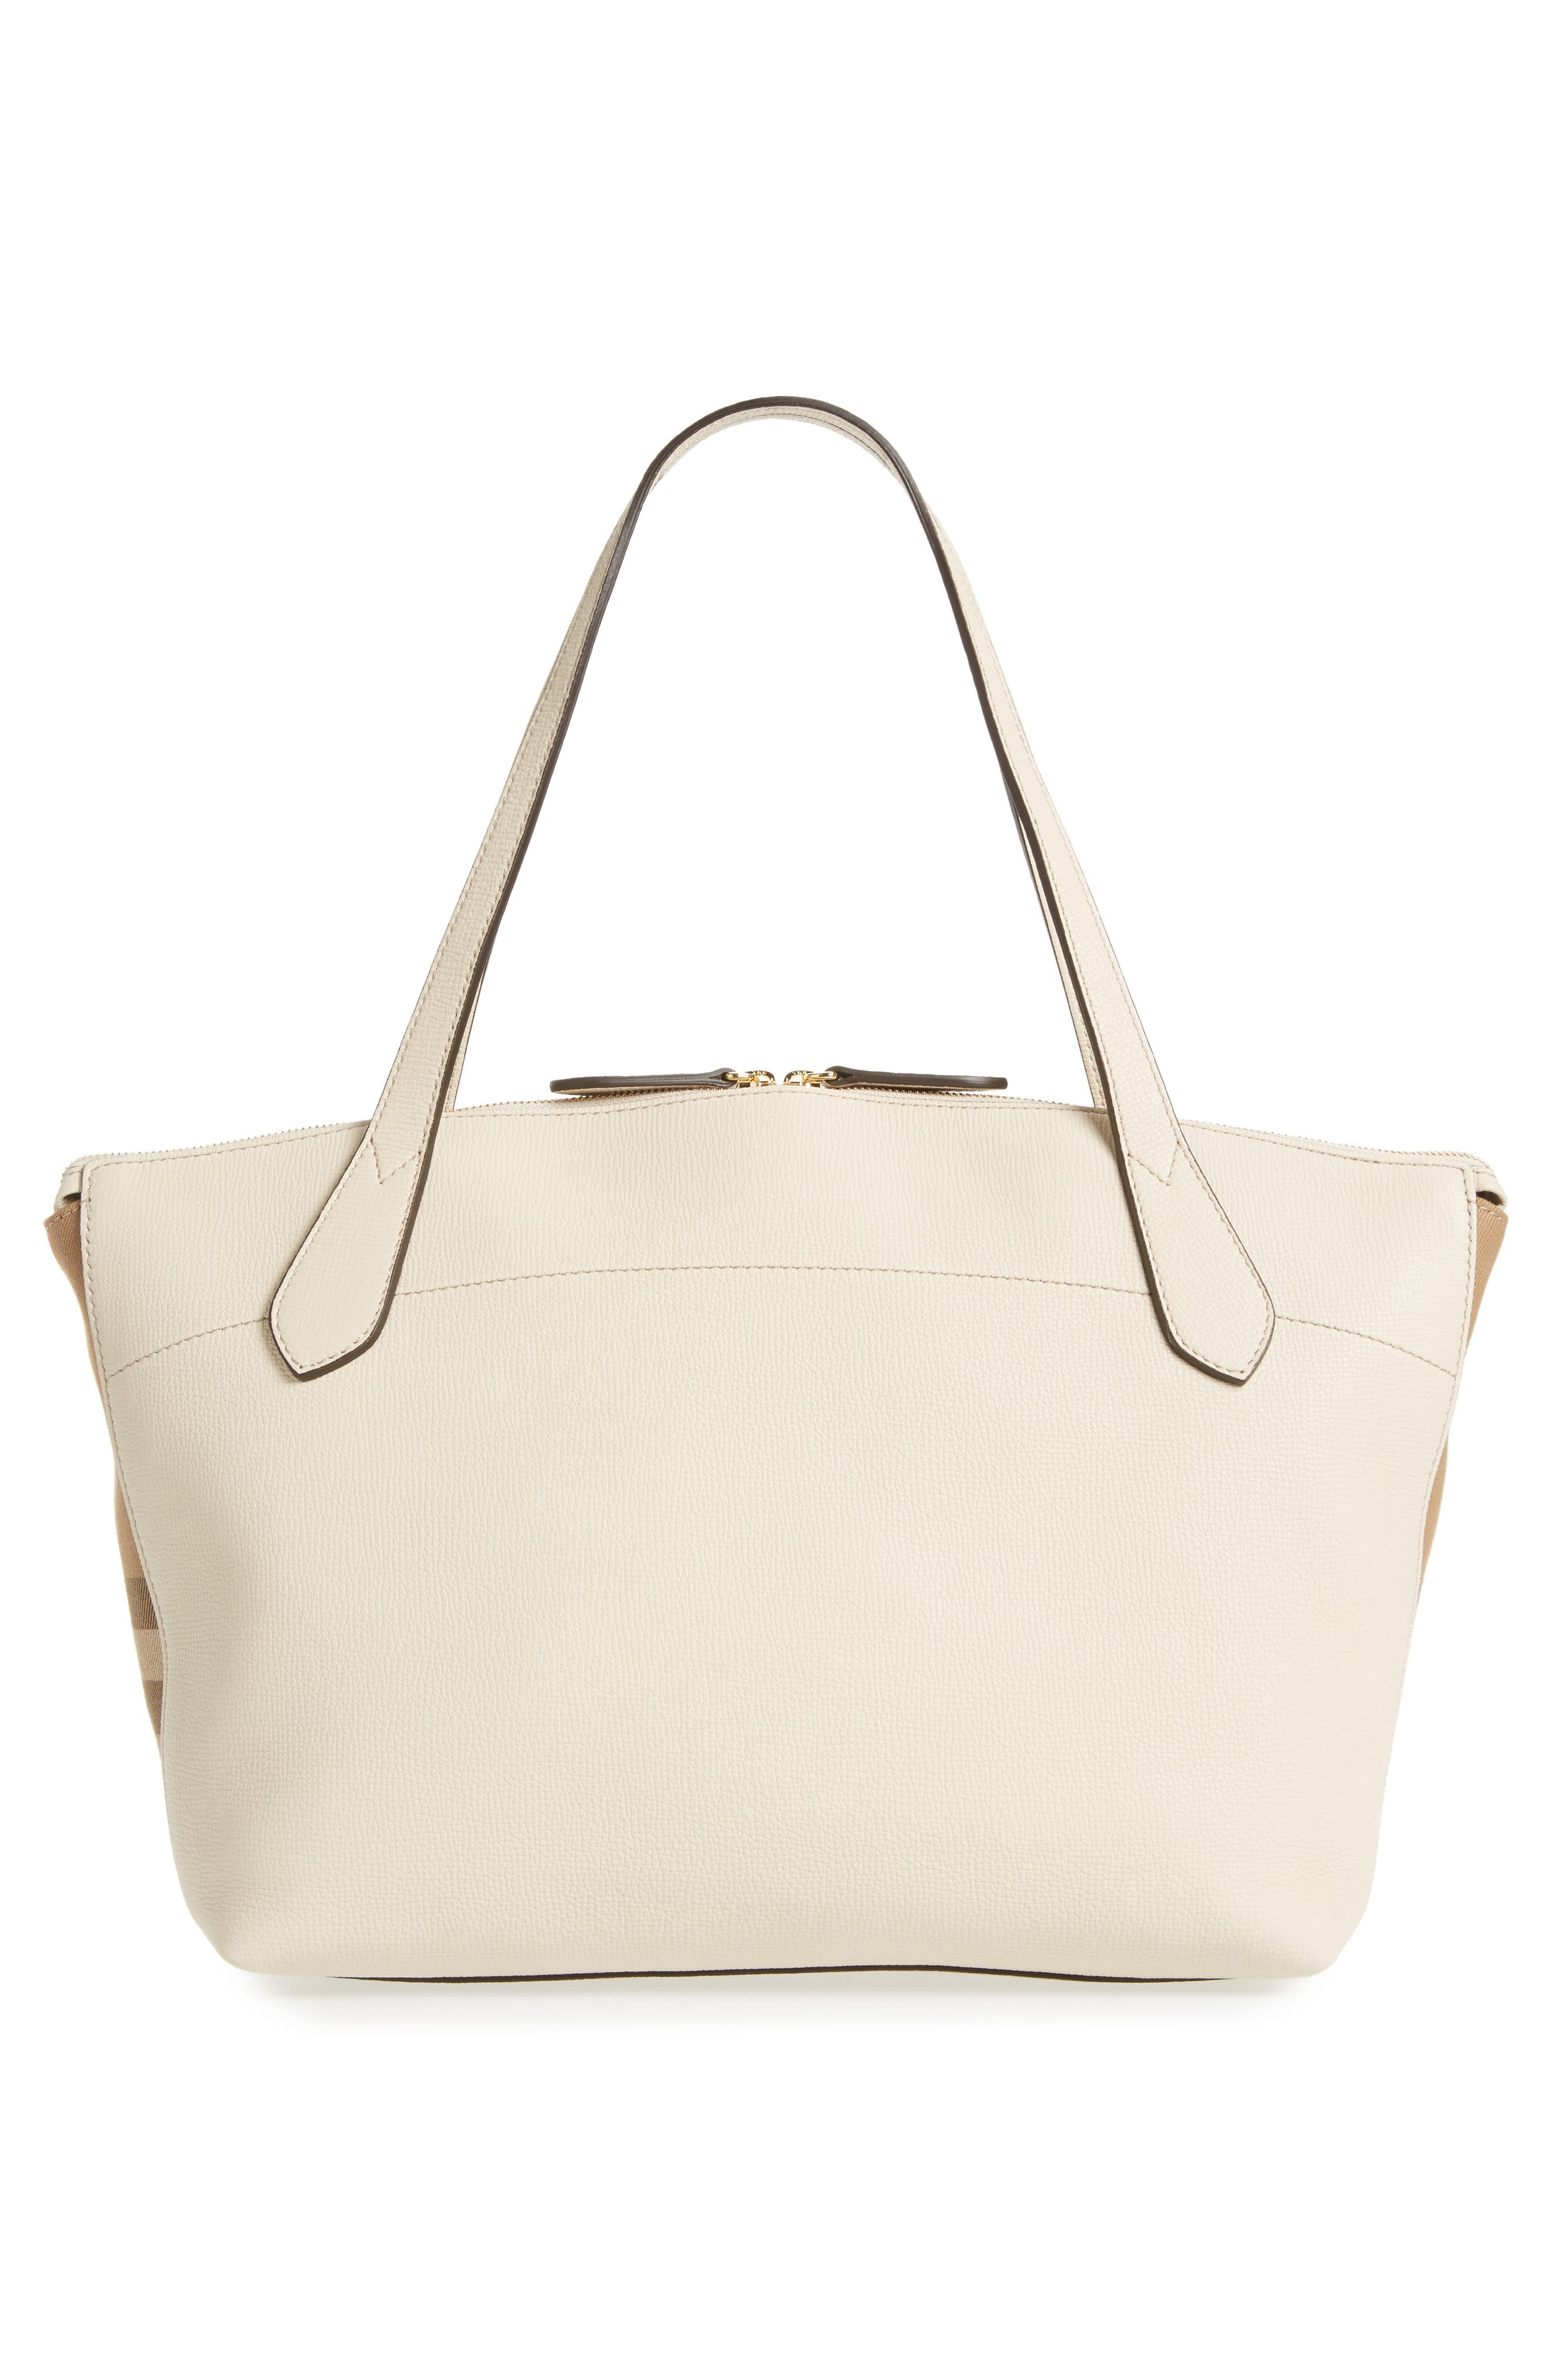 Welburn House Check & Leather Tote,                             Alternate thumbnail 3, color,                             900